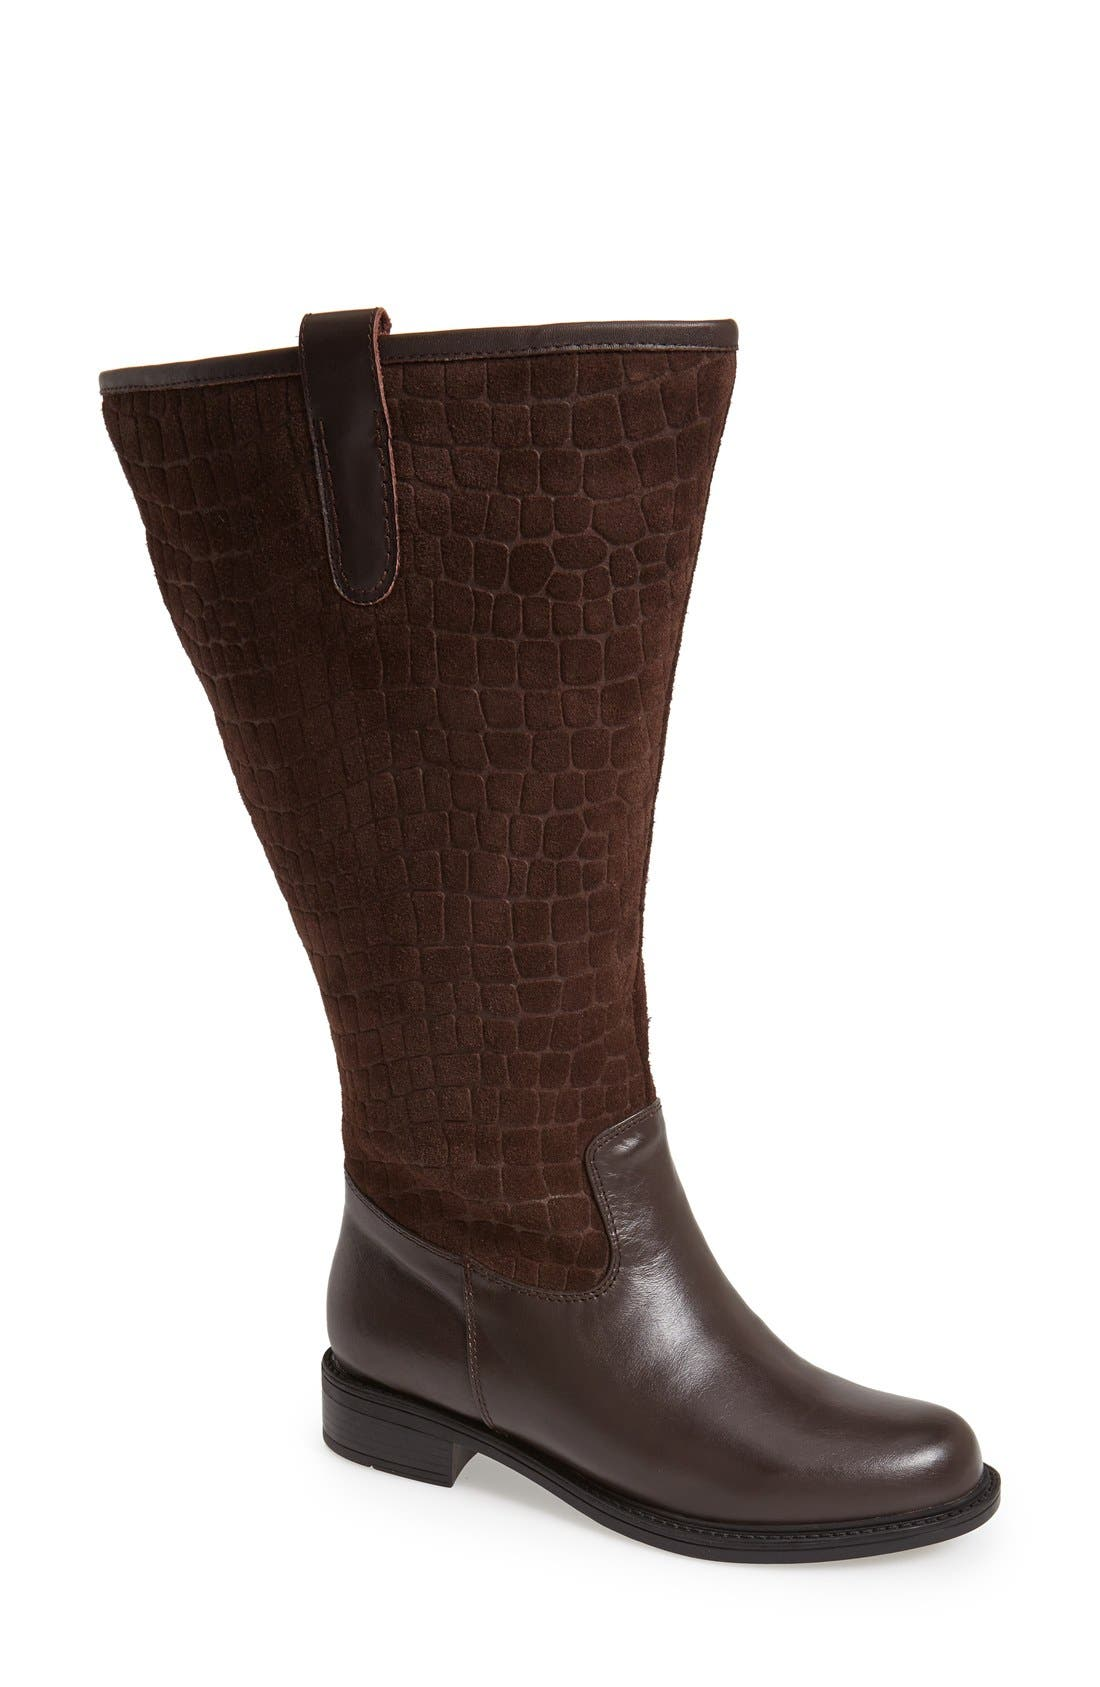 'Best' Calfskin Leather & Suede Boot,                             Main thumbnail 1, color,